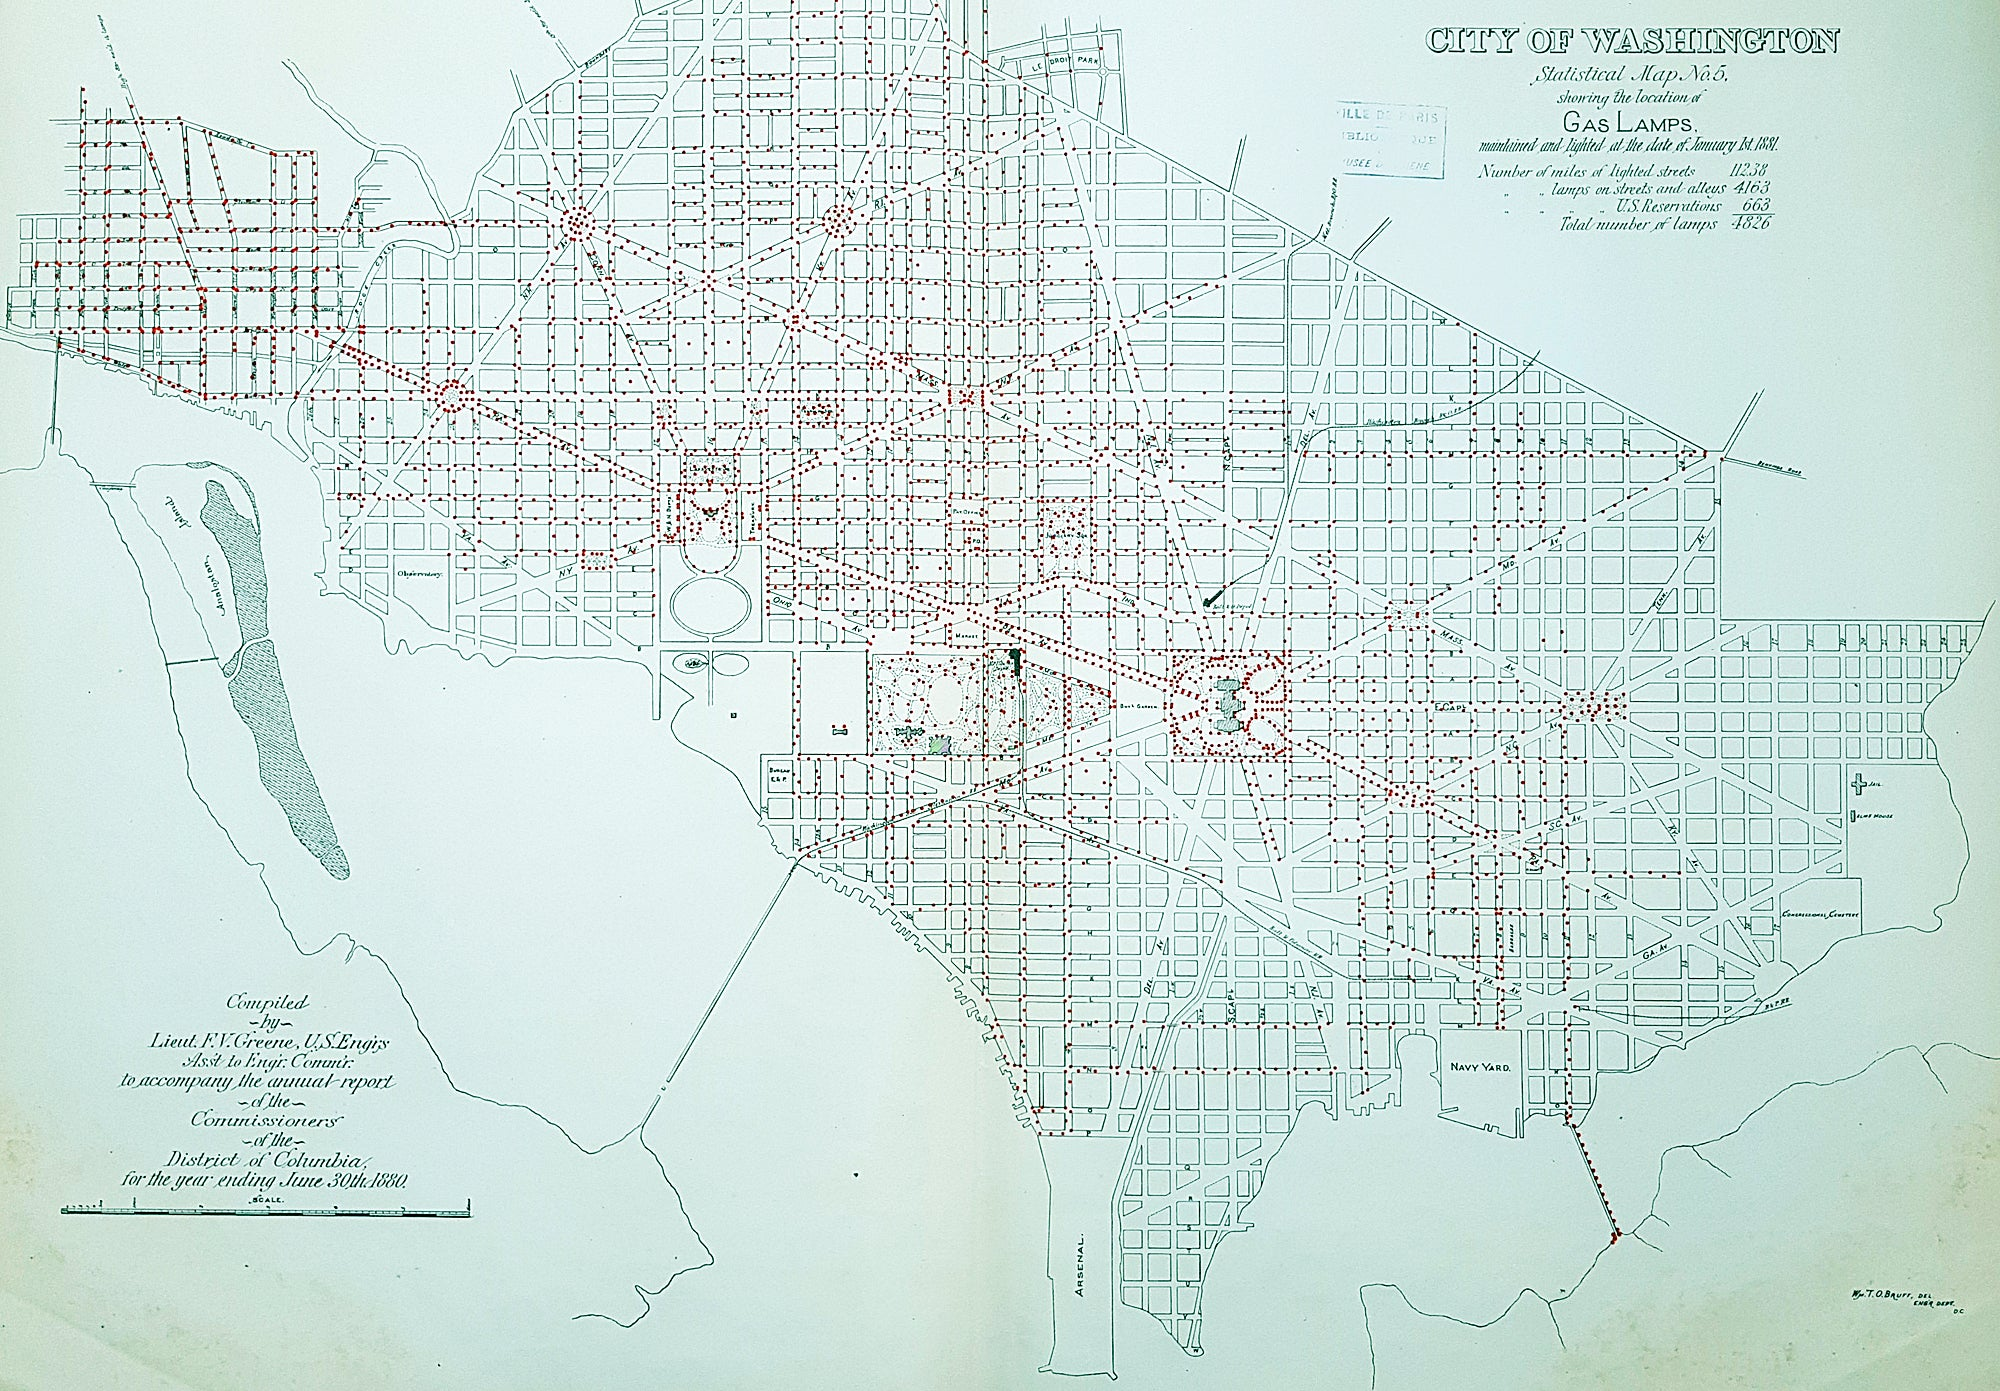 1880 F V Greene Large Antique Map Location of the Gas Lamps in Washington DC